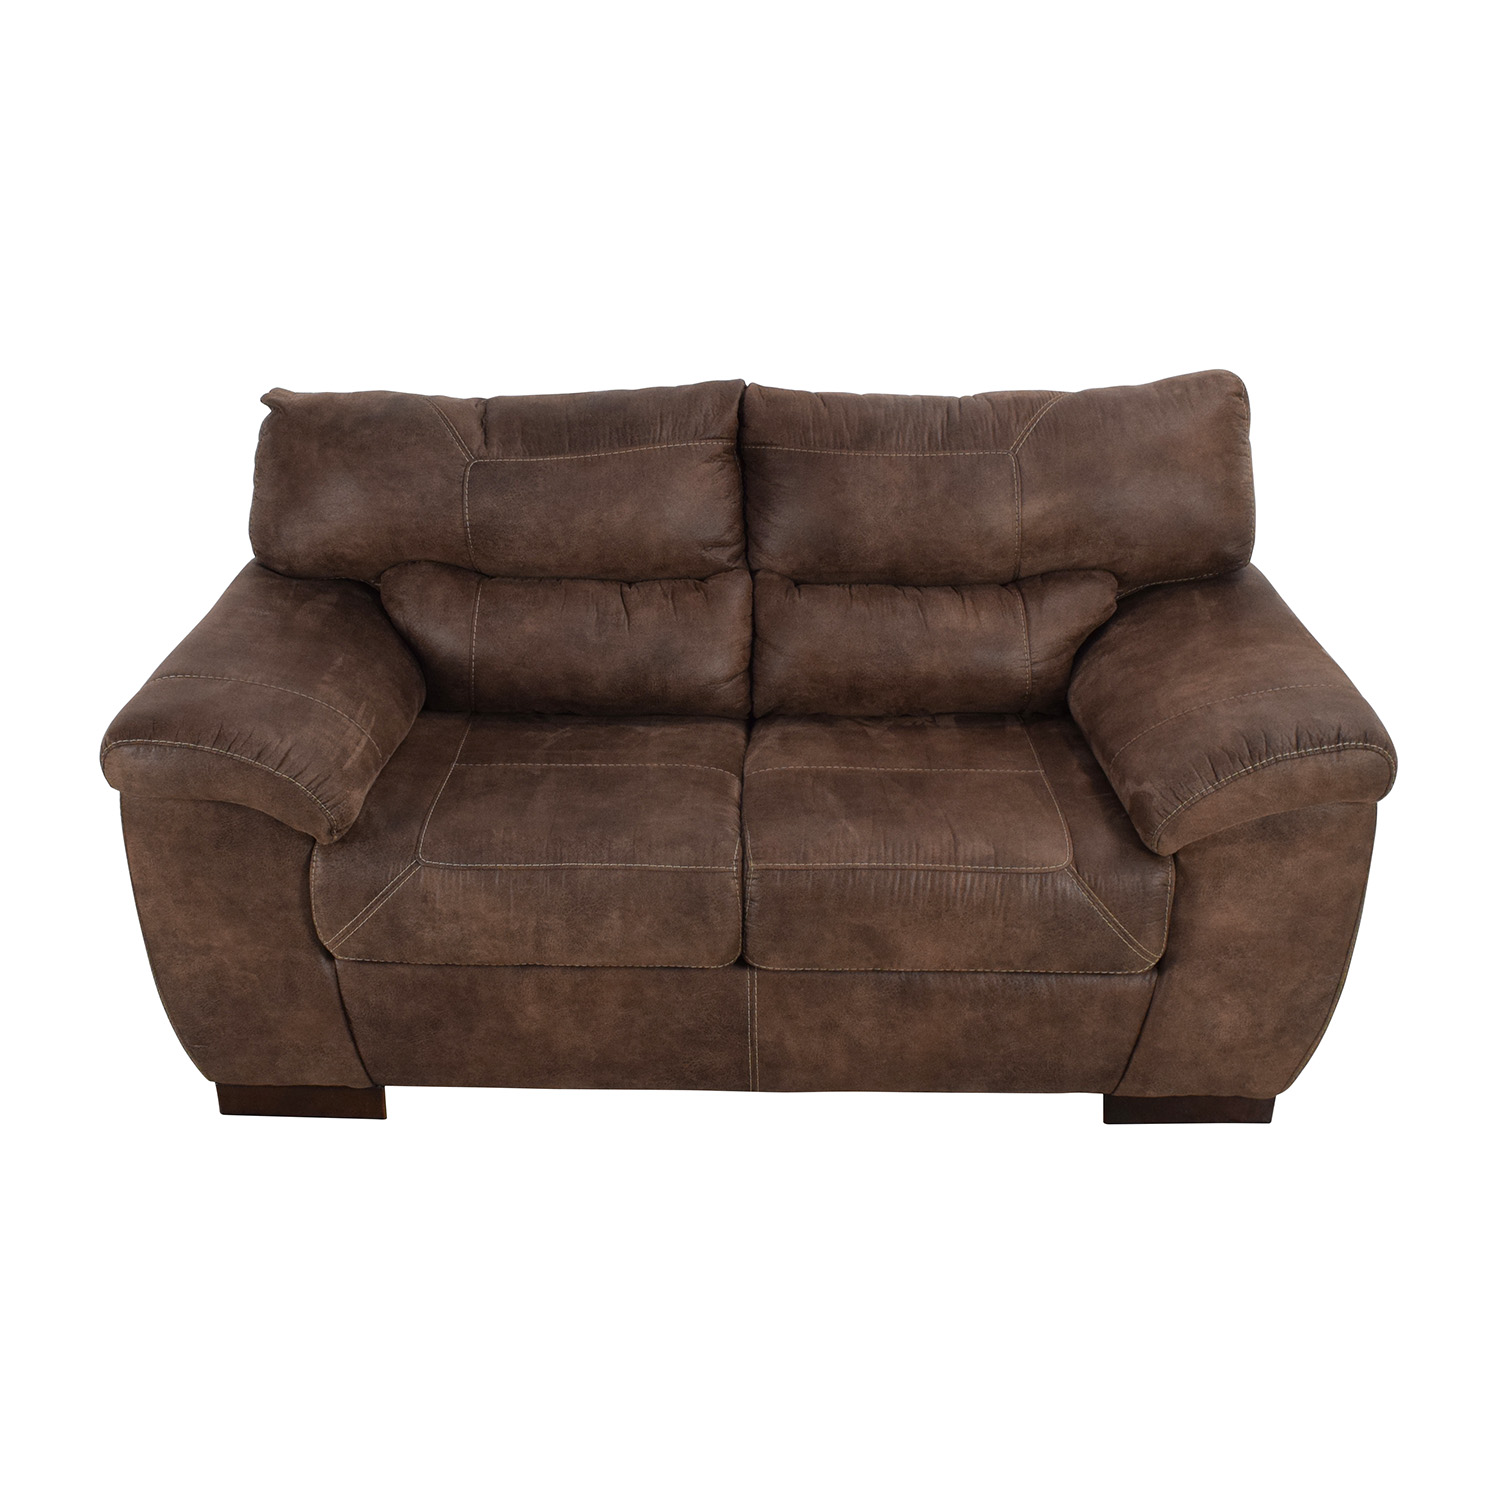 jennifer convertible sofas on sale reupholstering sofa cushions 50 off brown roll arm leather loveseat